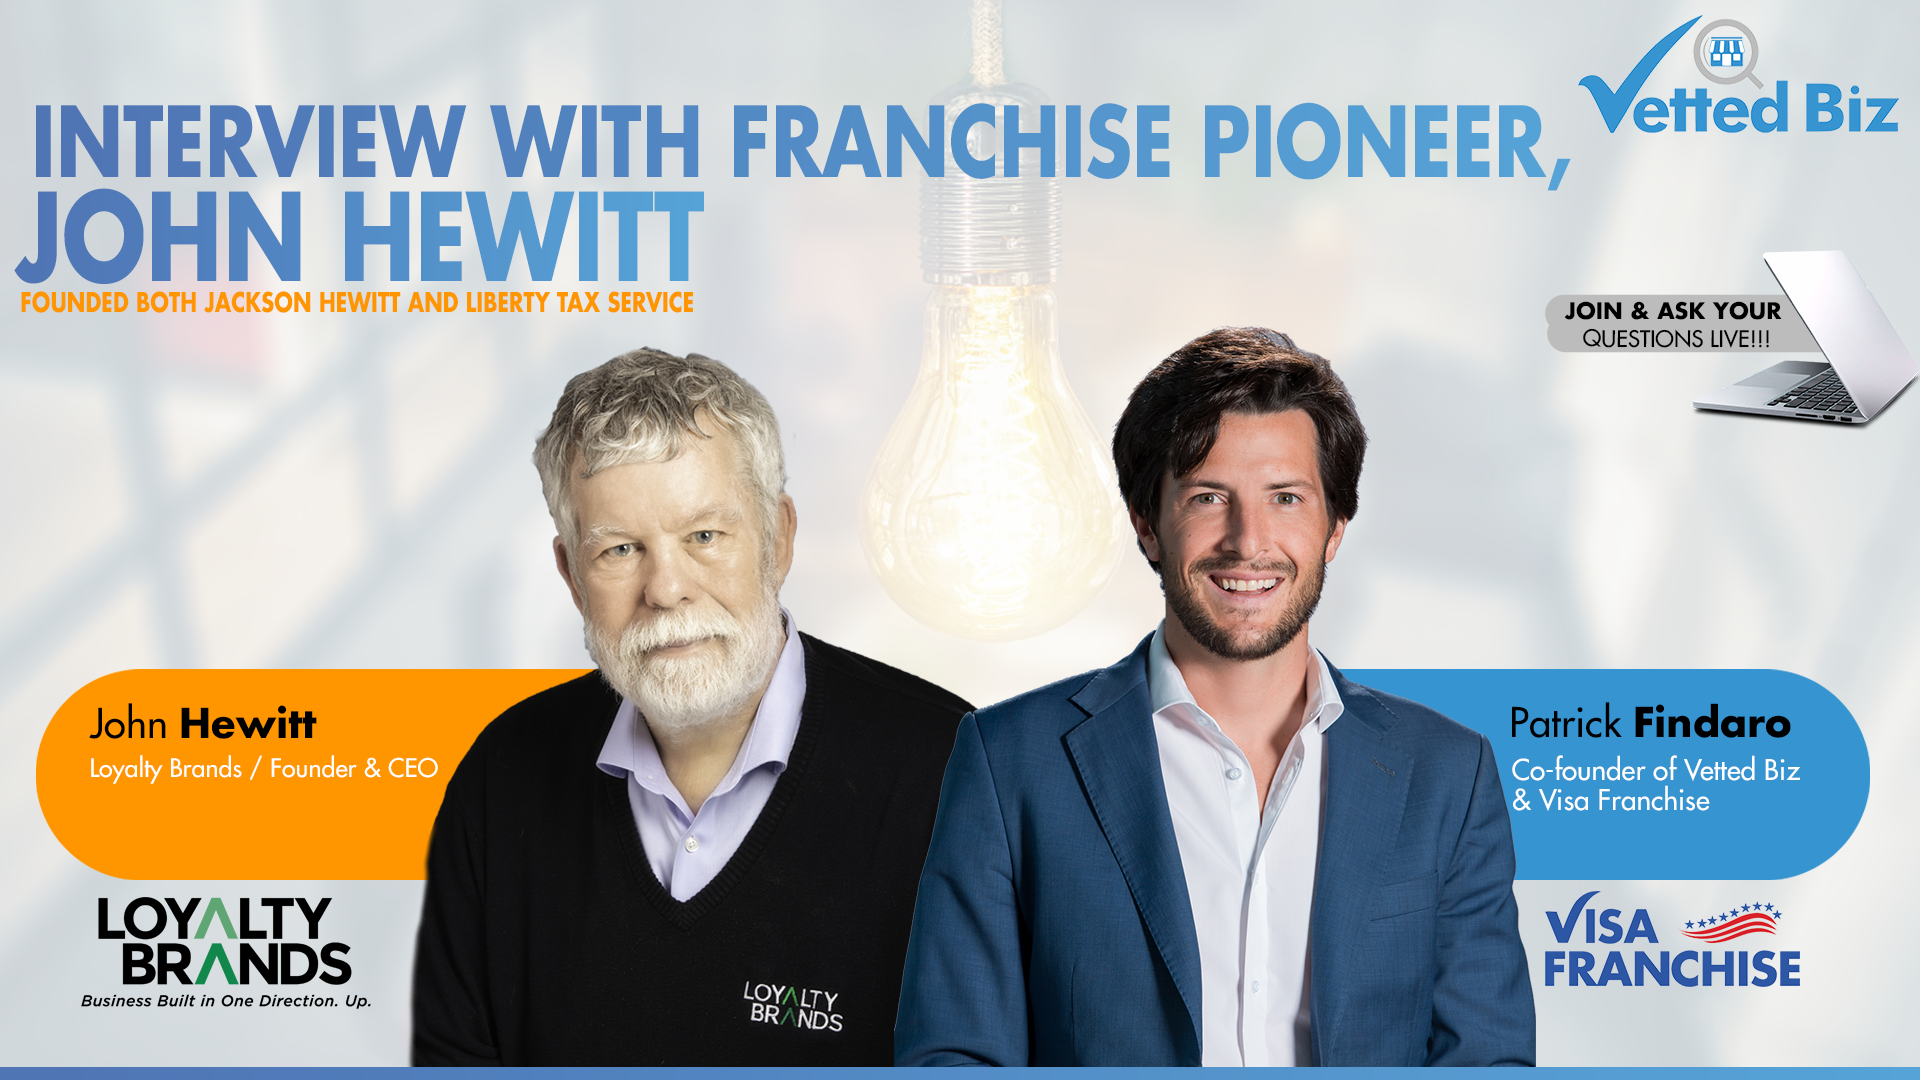 Interview with Franchise Pioneer John Hewitt